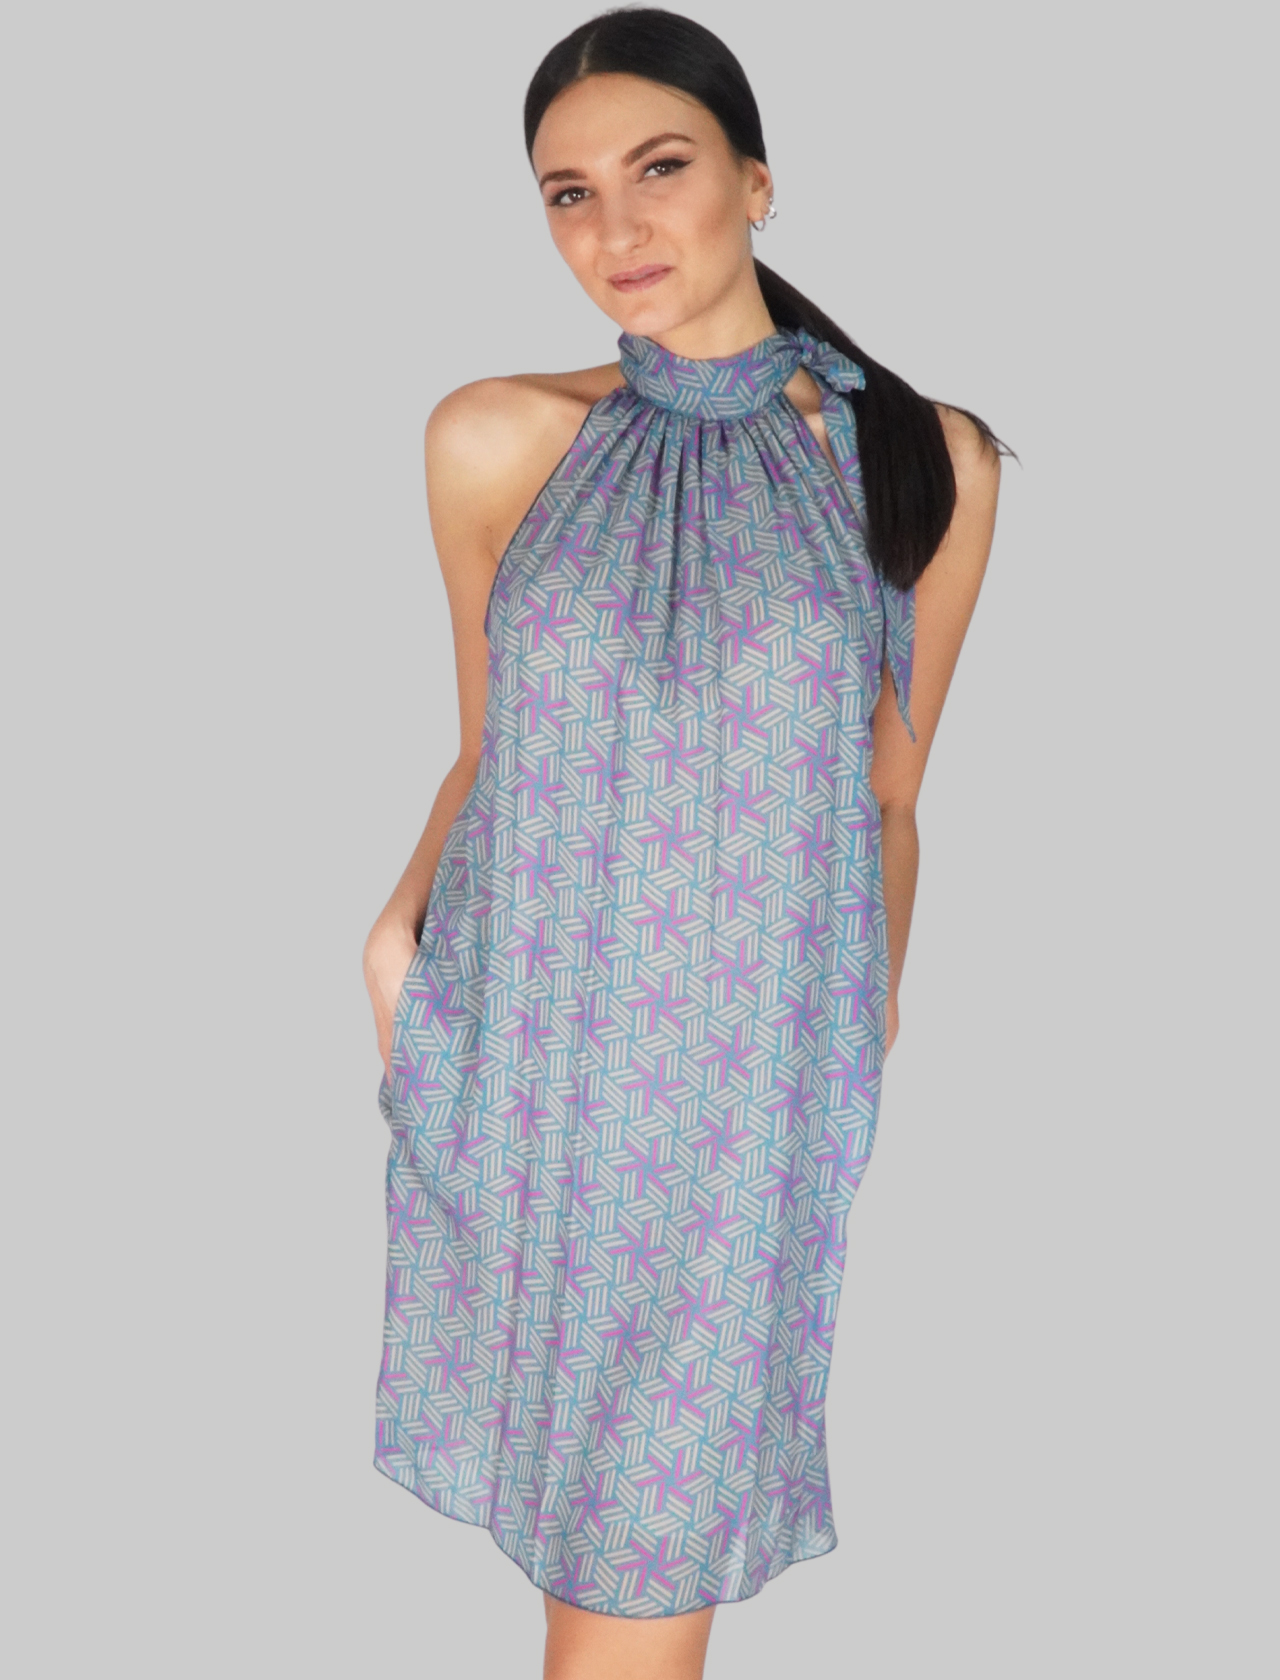 Women's Clothing Blue Fantasy Midi Dress with Bow Mercì |  | A575002